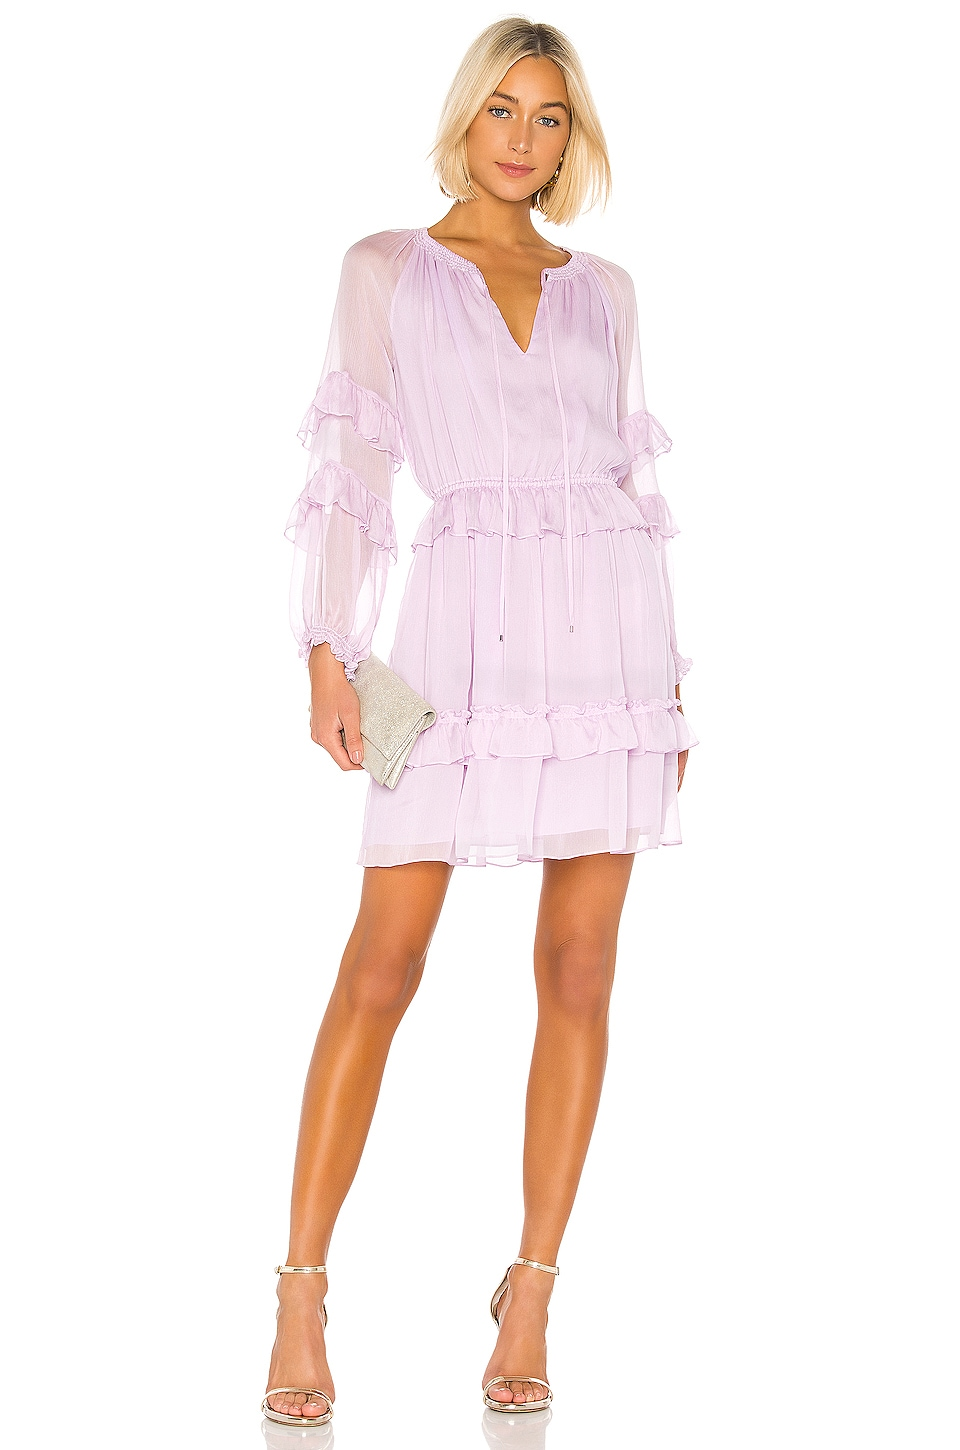 Diane von Furstenberg Haven Dress in Lavendula